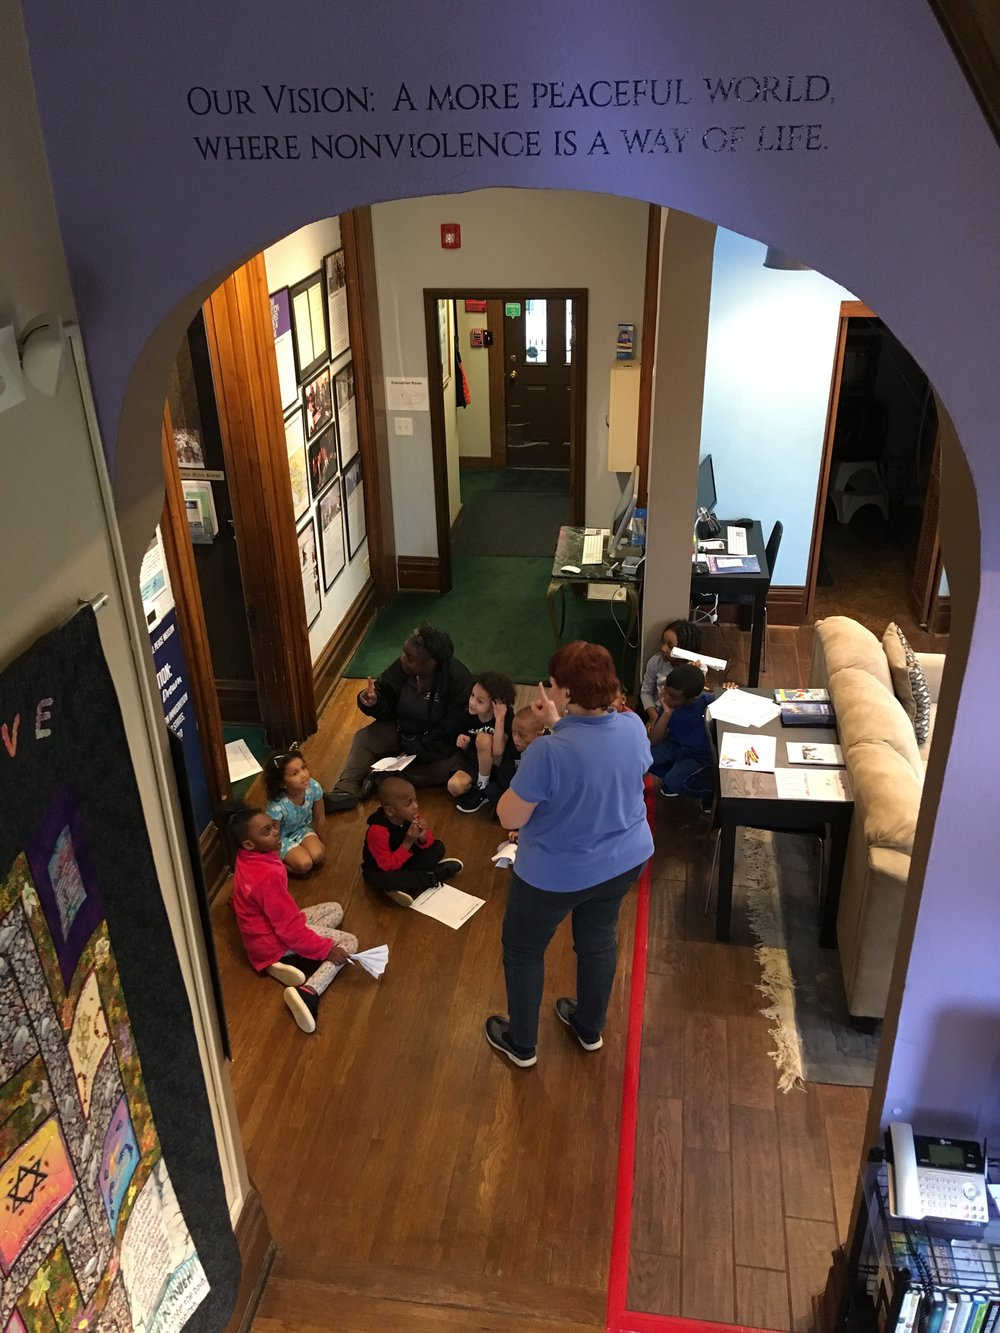 Giving tours to school groups often requires volunteer museum guides to come in early, but the Museum is committed to young people and promoting nonviolence and the merits of building peace and friendships in our community.